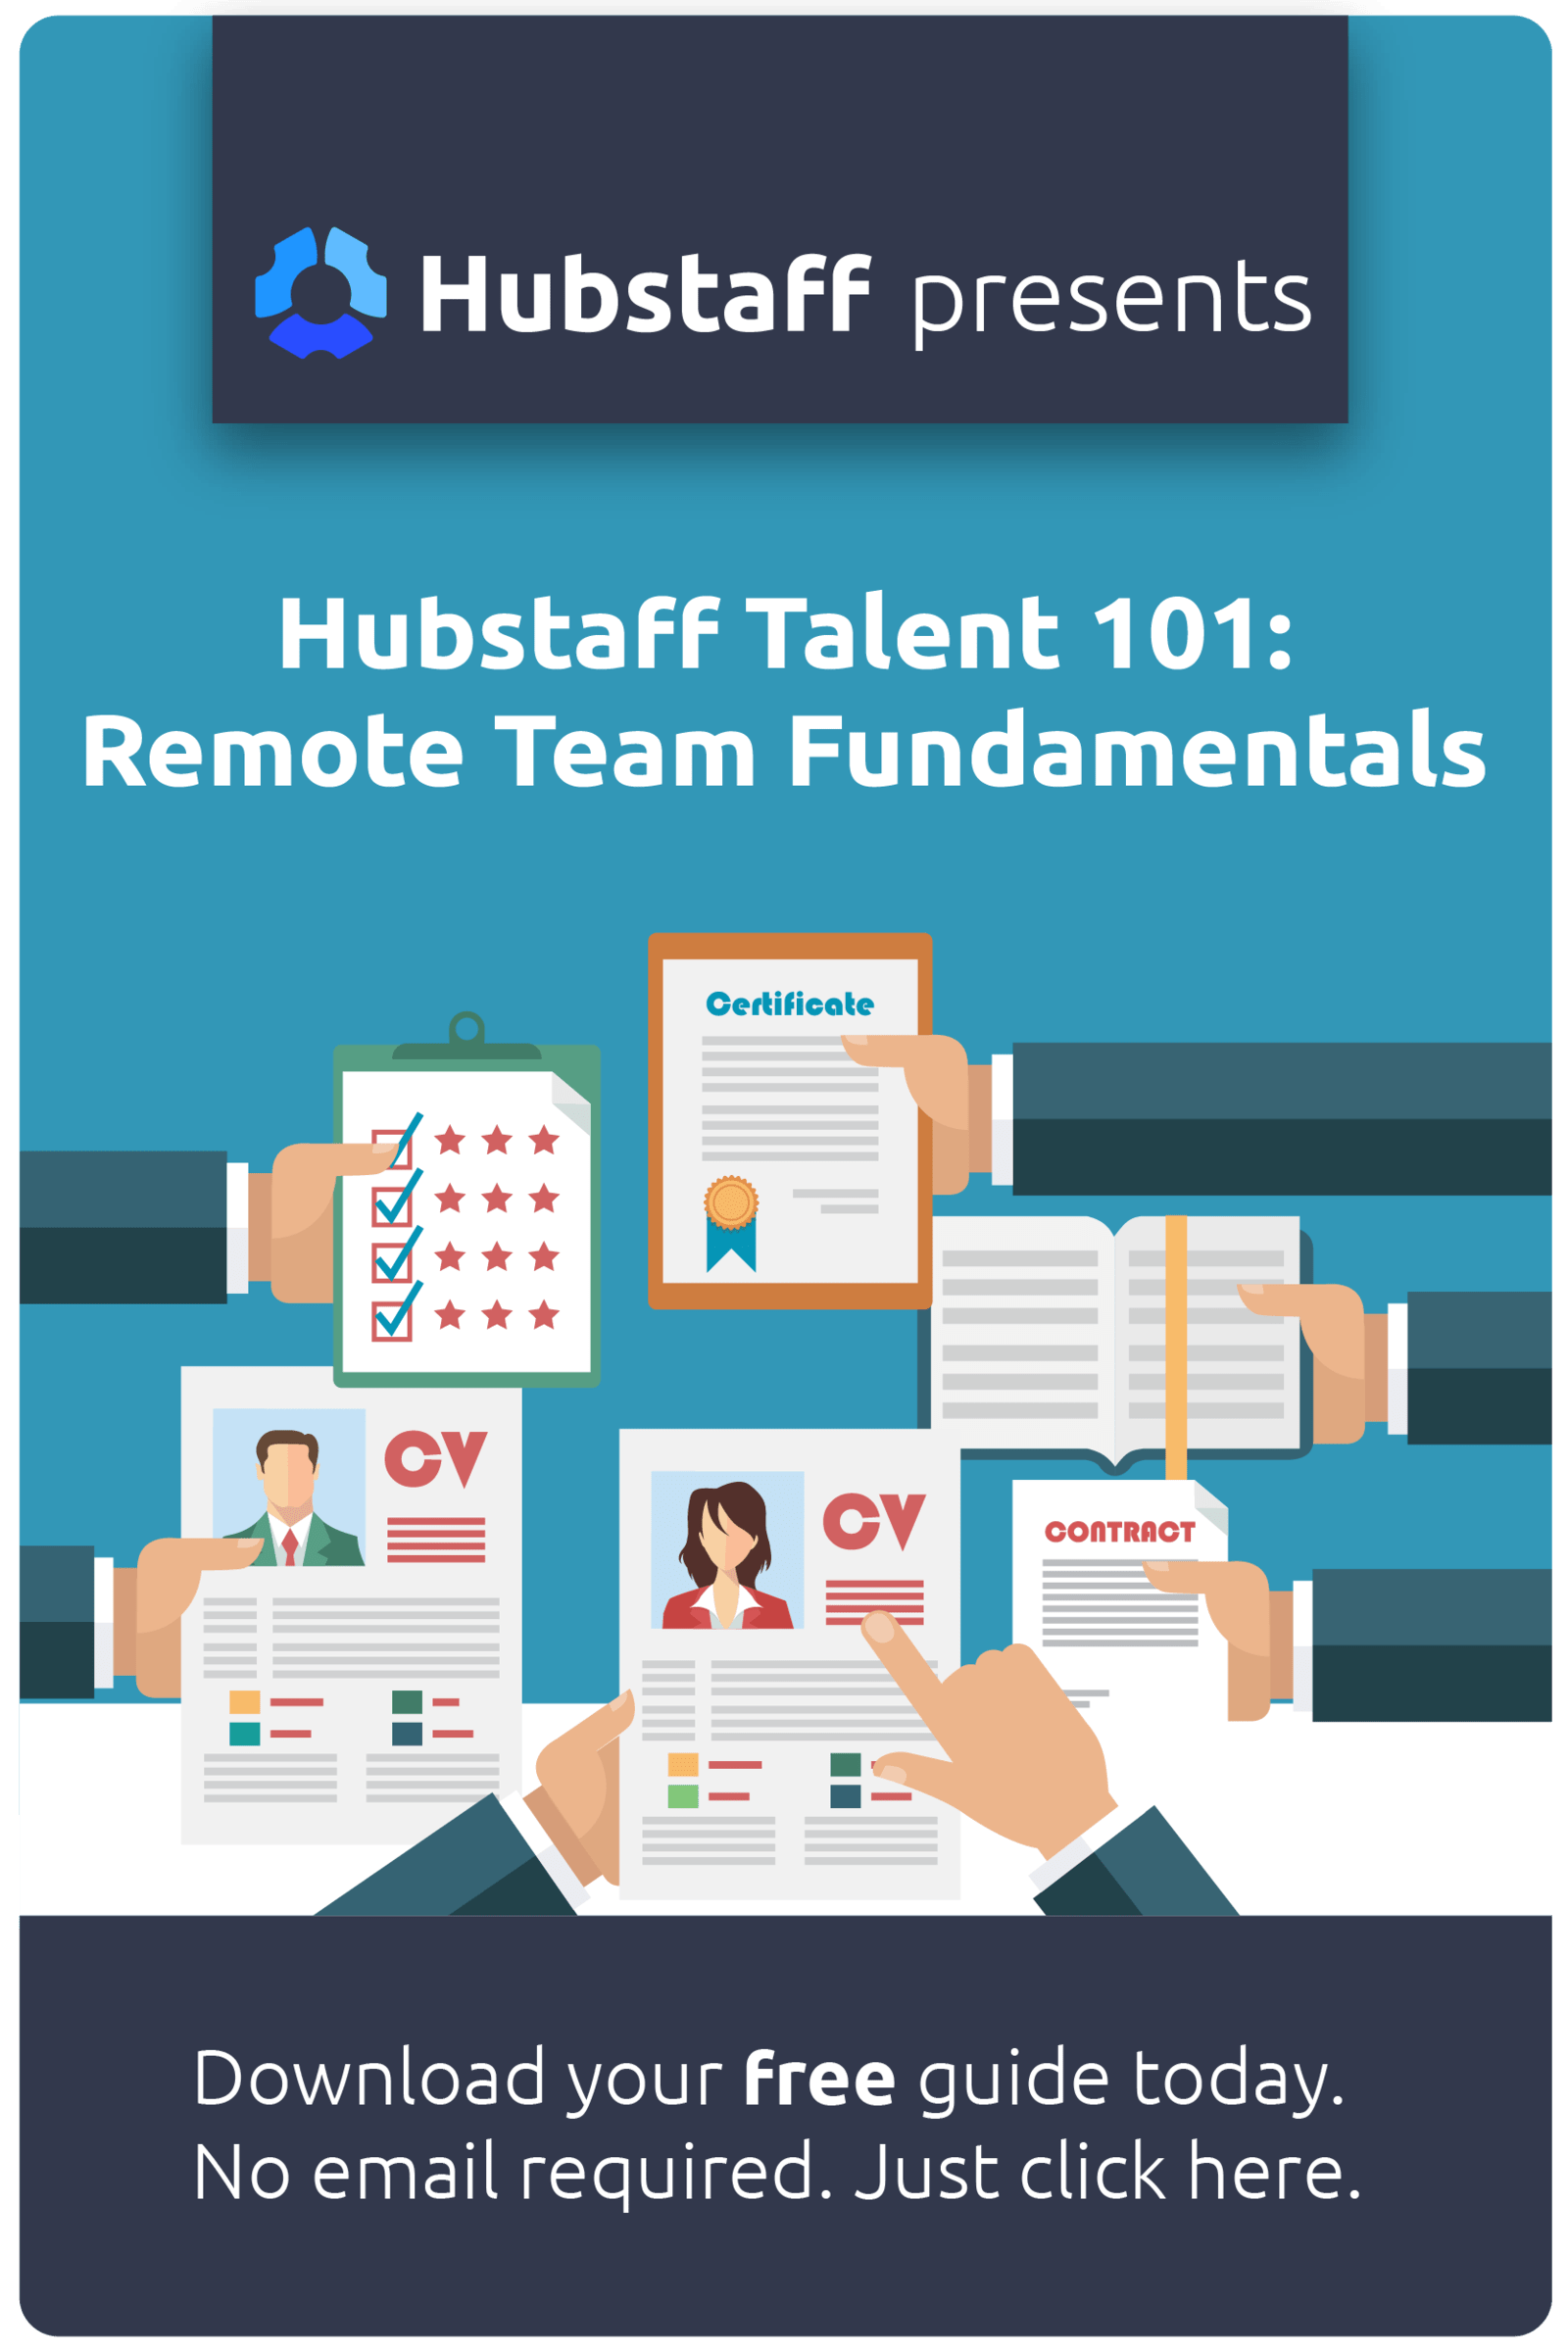 Hubstaff Talent: Remote Team Fundamentals